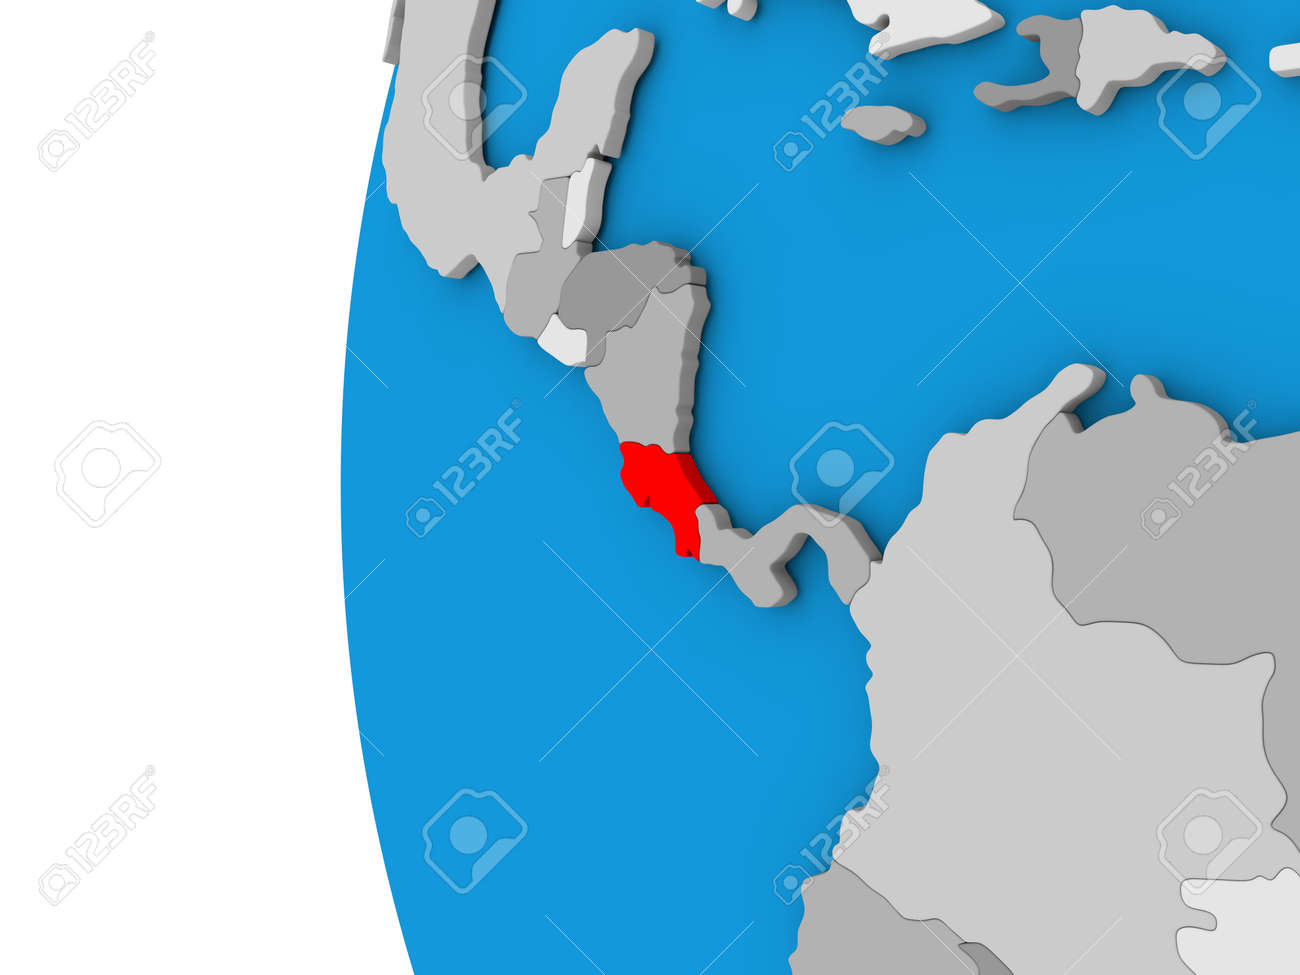 3d Map Of Costa Rica Focused In Red On Simple Globe 3d Illustration Stock Photo Picture And Royalty Free Image Image 68811078